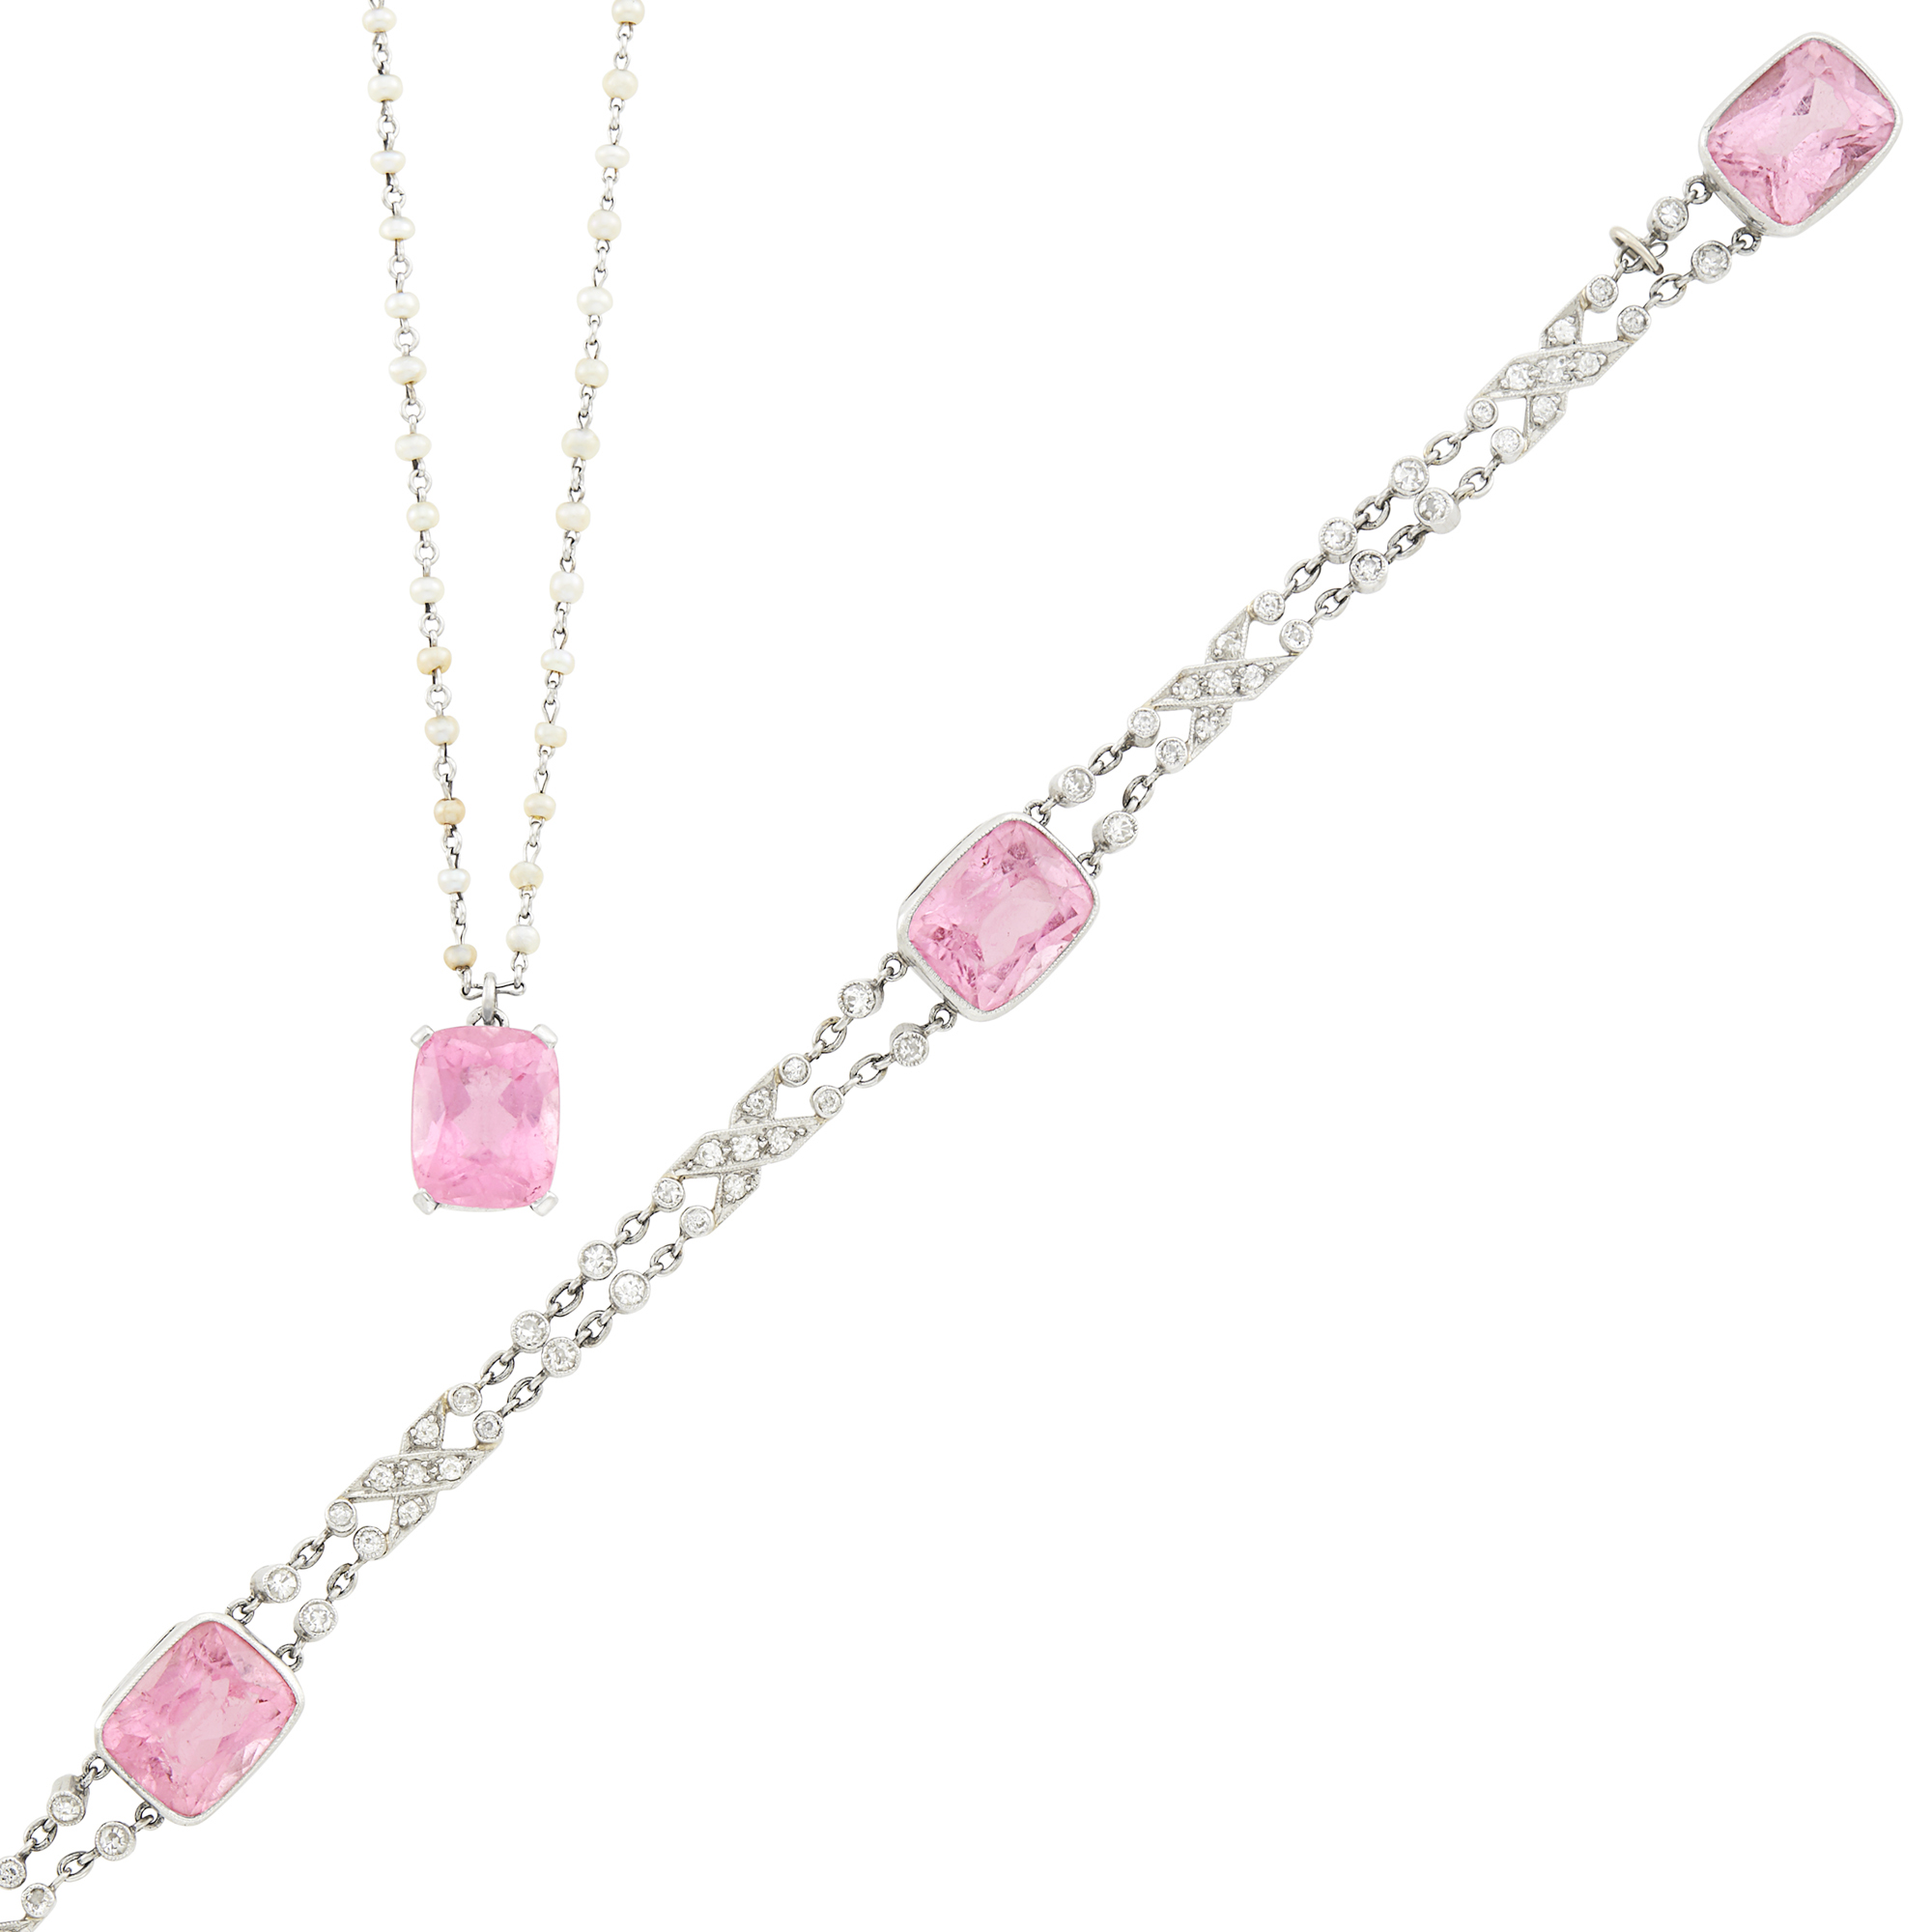 Lot image - Platinum, Seed Pearl and Pink Tourmaline Pendant-Necklace and Pink Tourmaline and Diamond Bracelet